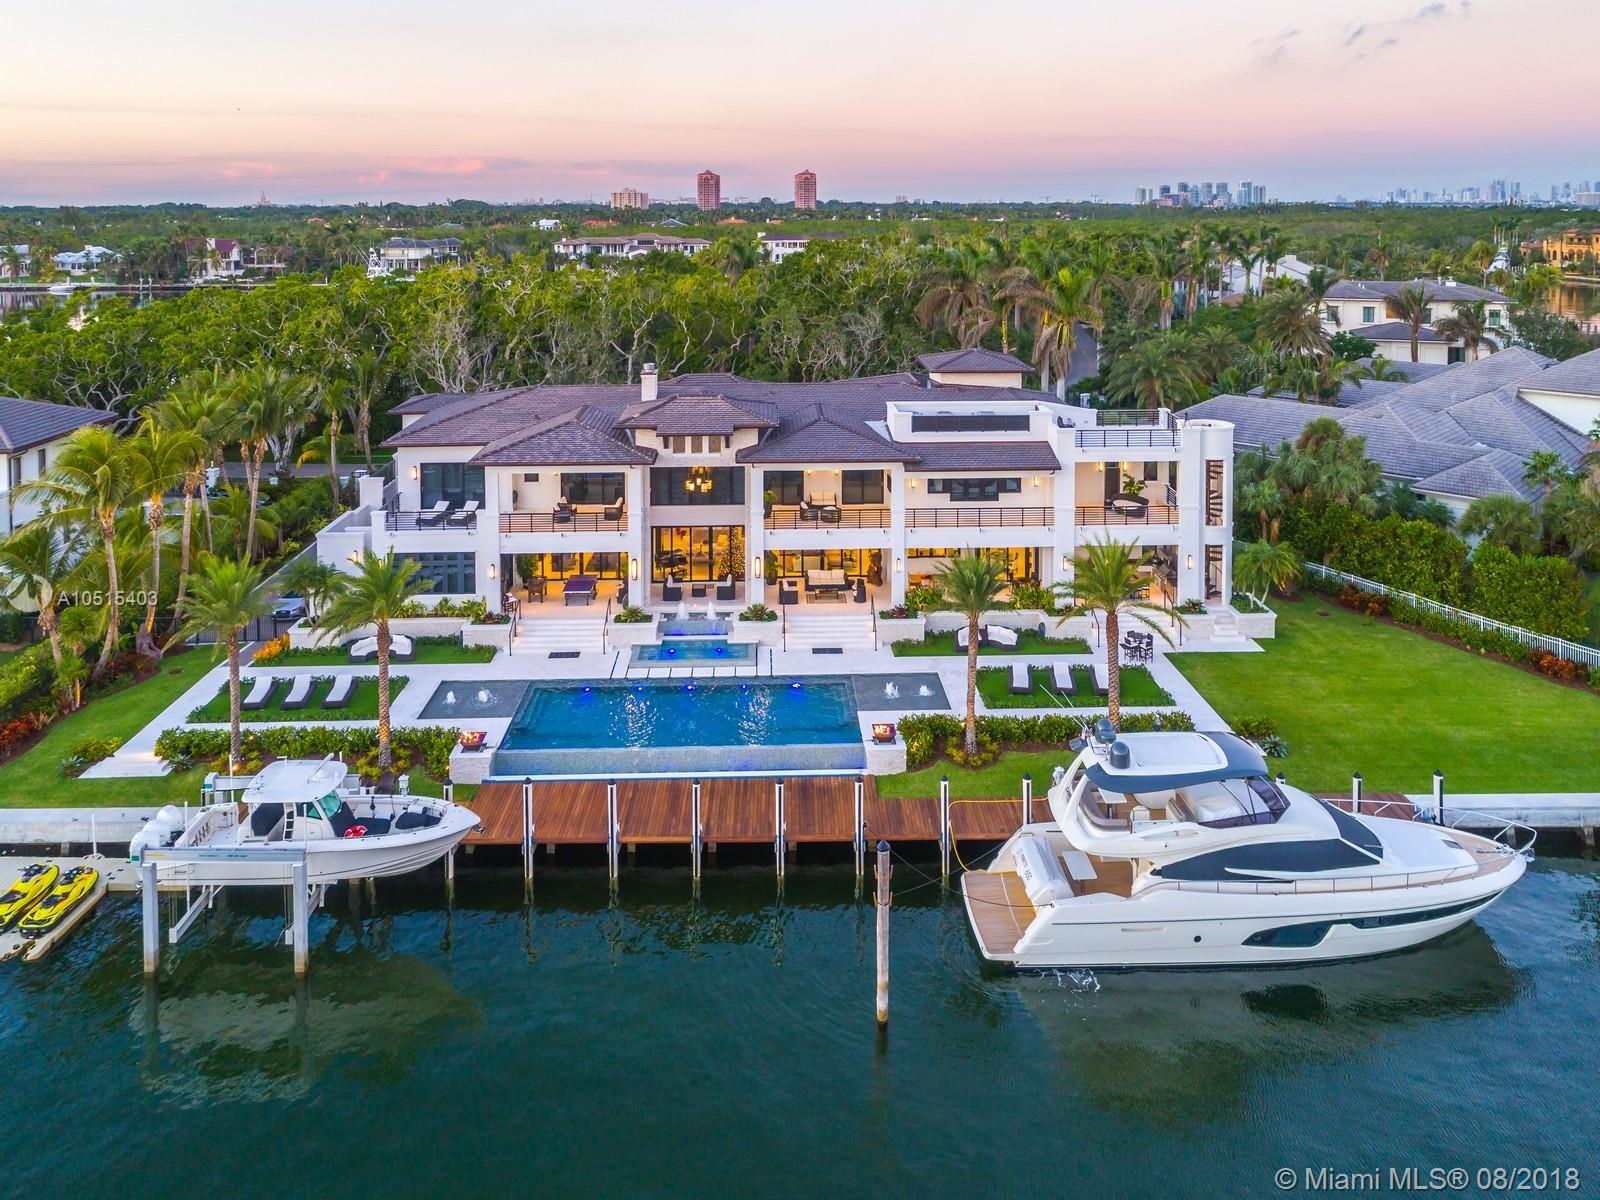 The Most Stunning Home In The Exclusive Guard-Gated Community Of Gables Estates. Premiere 255 Ft Of Water Frontage W/ 160 Ft Dock Situated On The Widest Part Of The Canal Just Two Houses Away From The Bay W/ Direct Ocean Access. Extraordinary 2017 Home W/ Fabulous Views Of Garden & Waterway Will Exceed Your Expectations Of A Unique Lifestyle Allowing Natural Light To Radiates Throughout Every Room. Features: Impressive Master Suite W/ Sitting Area Overlooking The Water & Enormous Marble Bathroom Spa Style W/ Outdoor Summer Shower, 14 Seats Estate Of The Art Theater Room W/ Optic Ceiling Lighting, Game Room W/ Wet Bar & Wine Cellar. Outdoor Entertainment Area W/ Summer Kitchen & Teppanaki Table, Covered Terraces, Rooftop Deck, And Infinity Edge<Br />Heated Pool W/ Fire Bowls & Fountains.